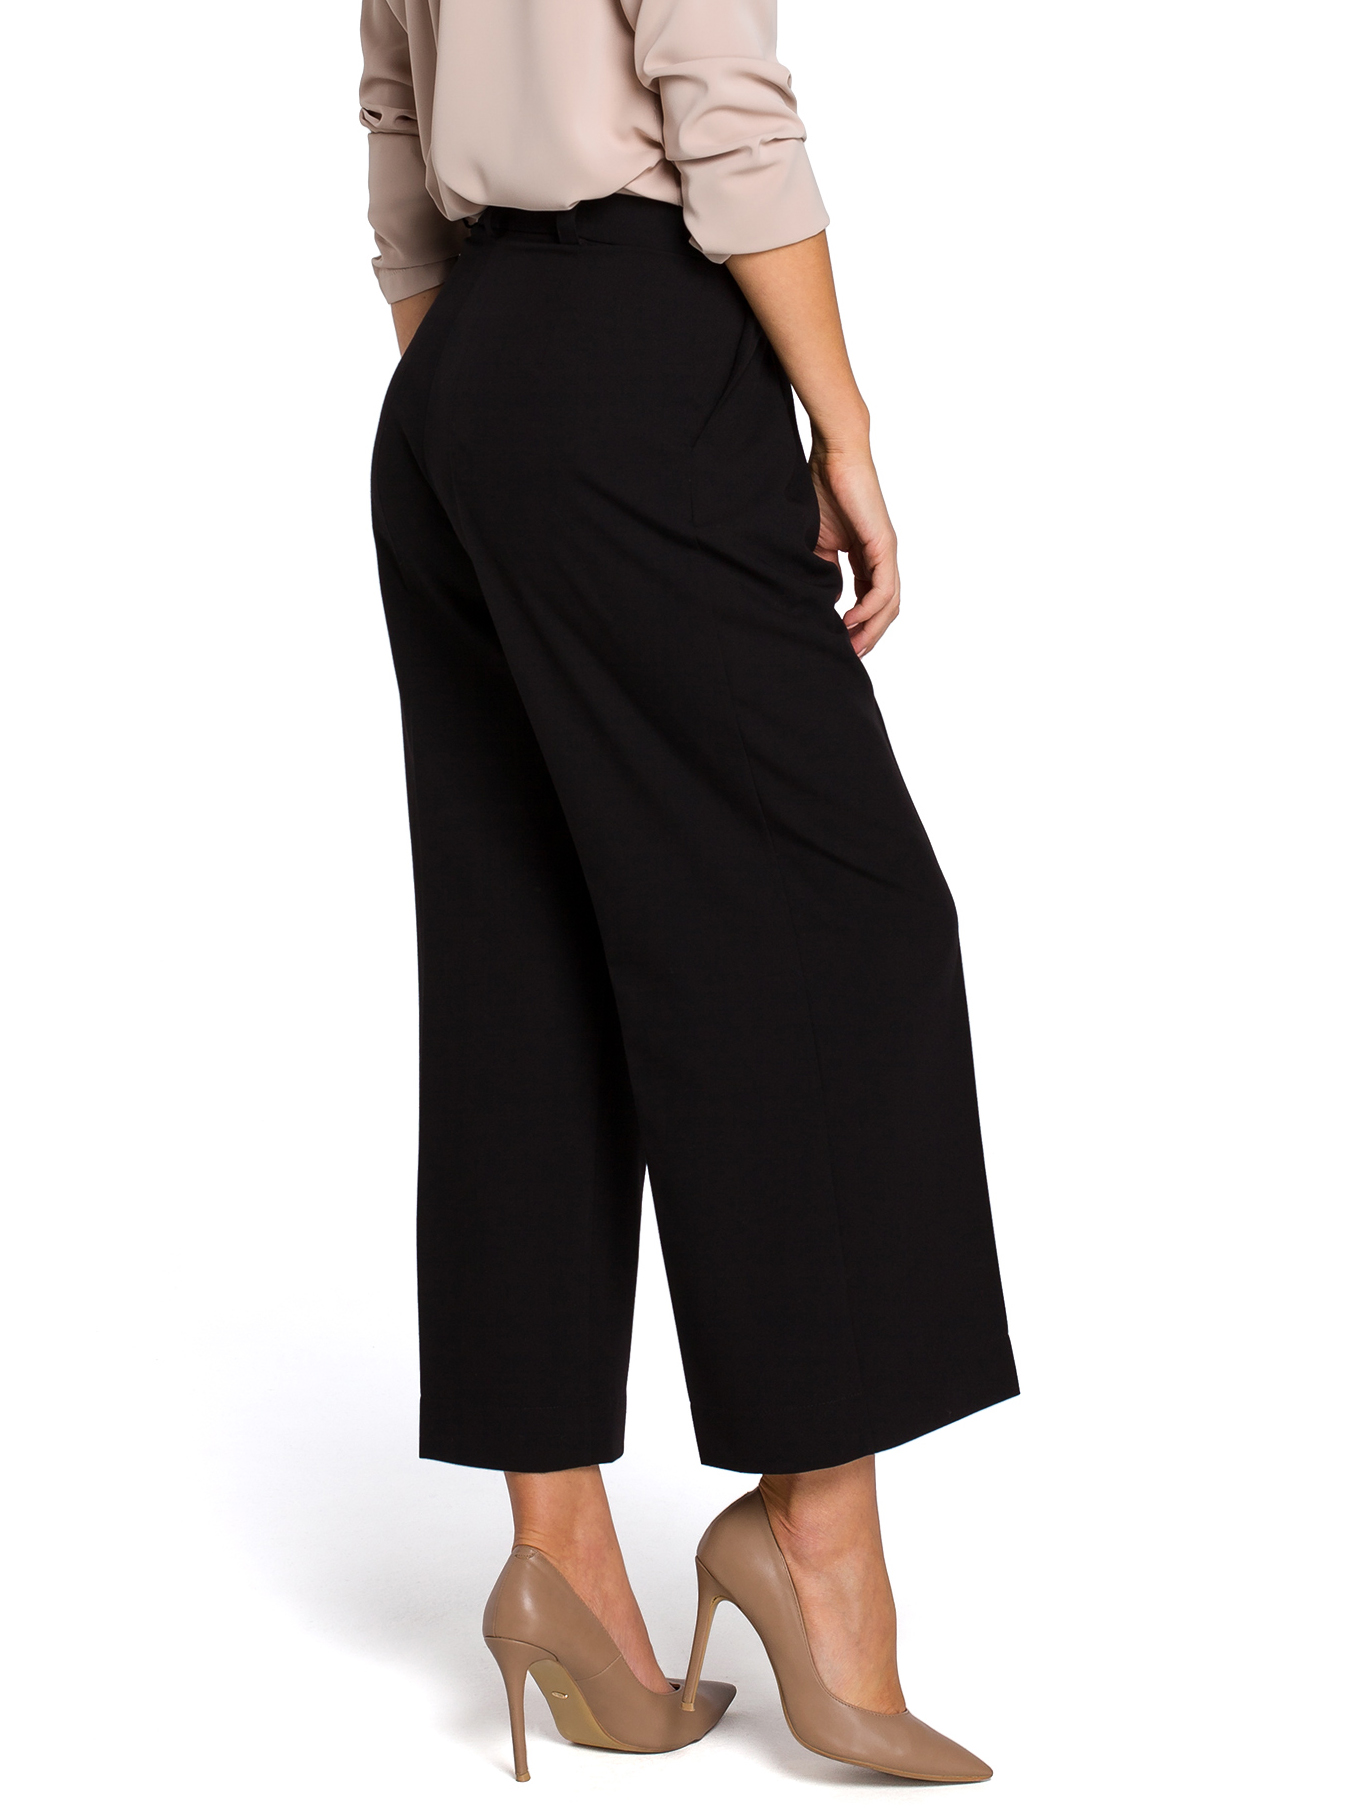 STYLE culottes musta S139